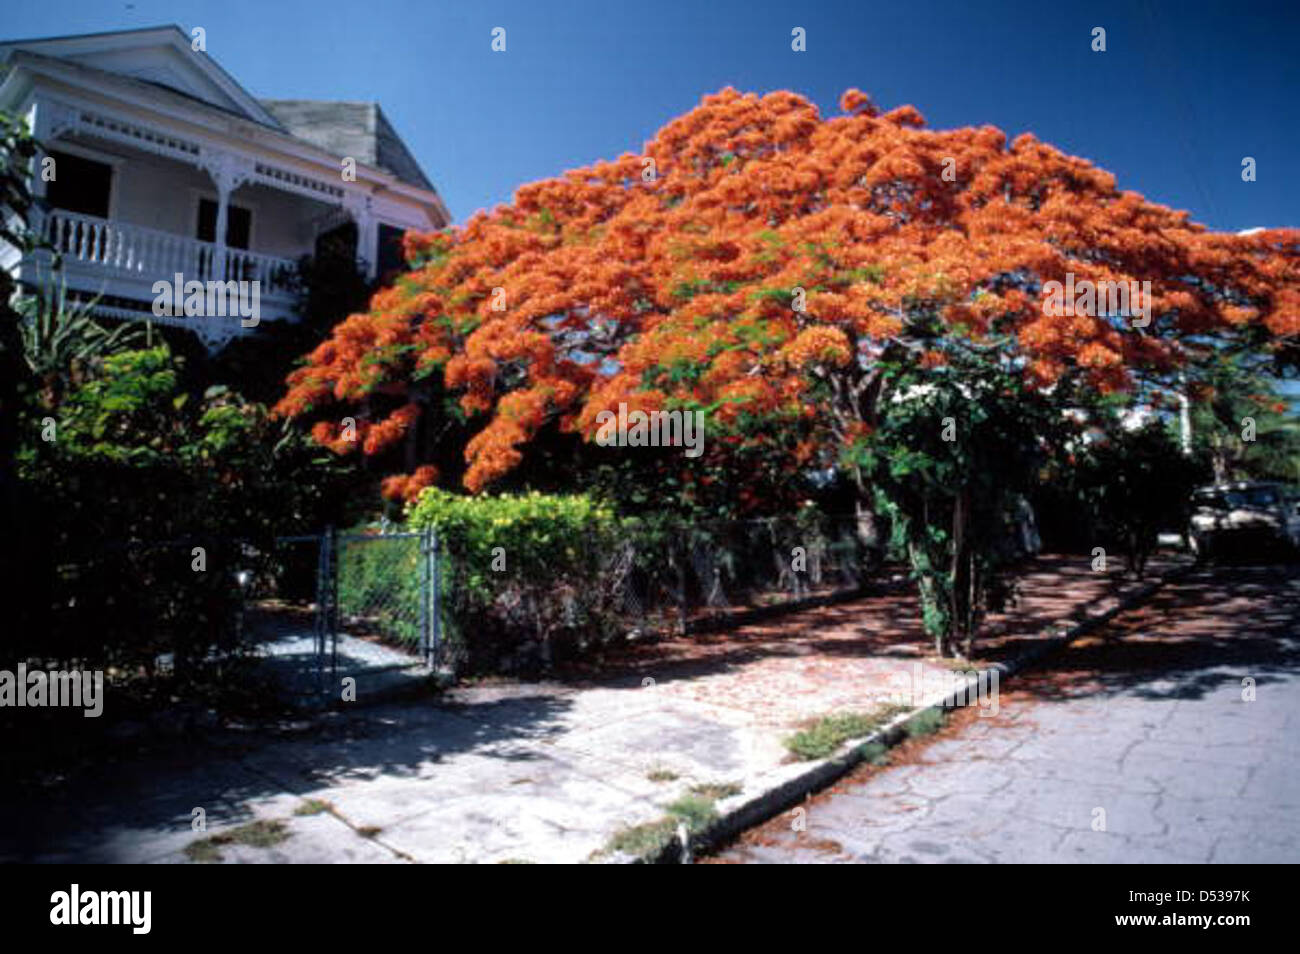 Poincianas in bloom on Southard Street: Key West, Florida - Stock Image